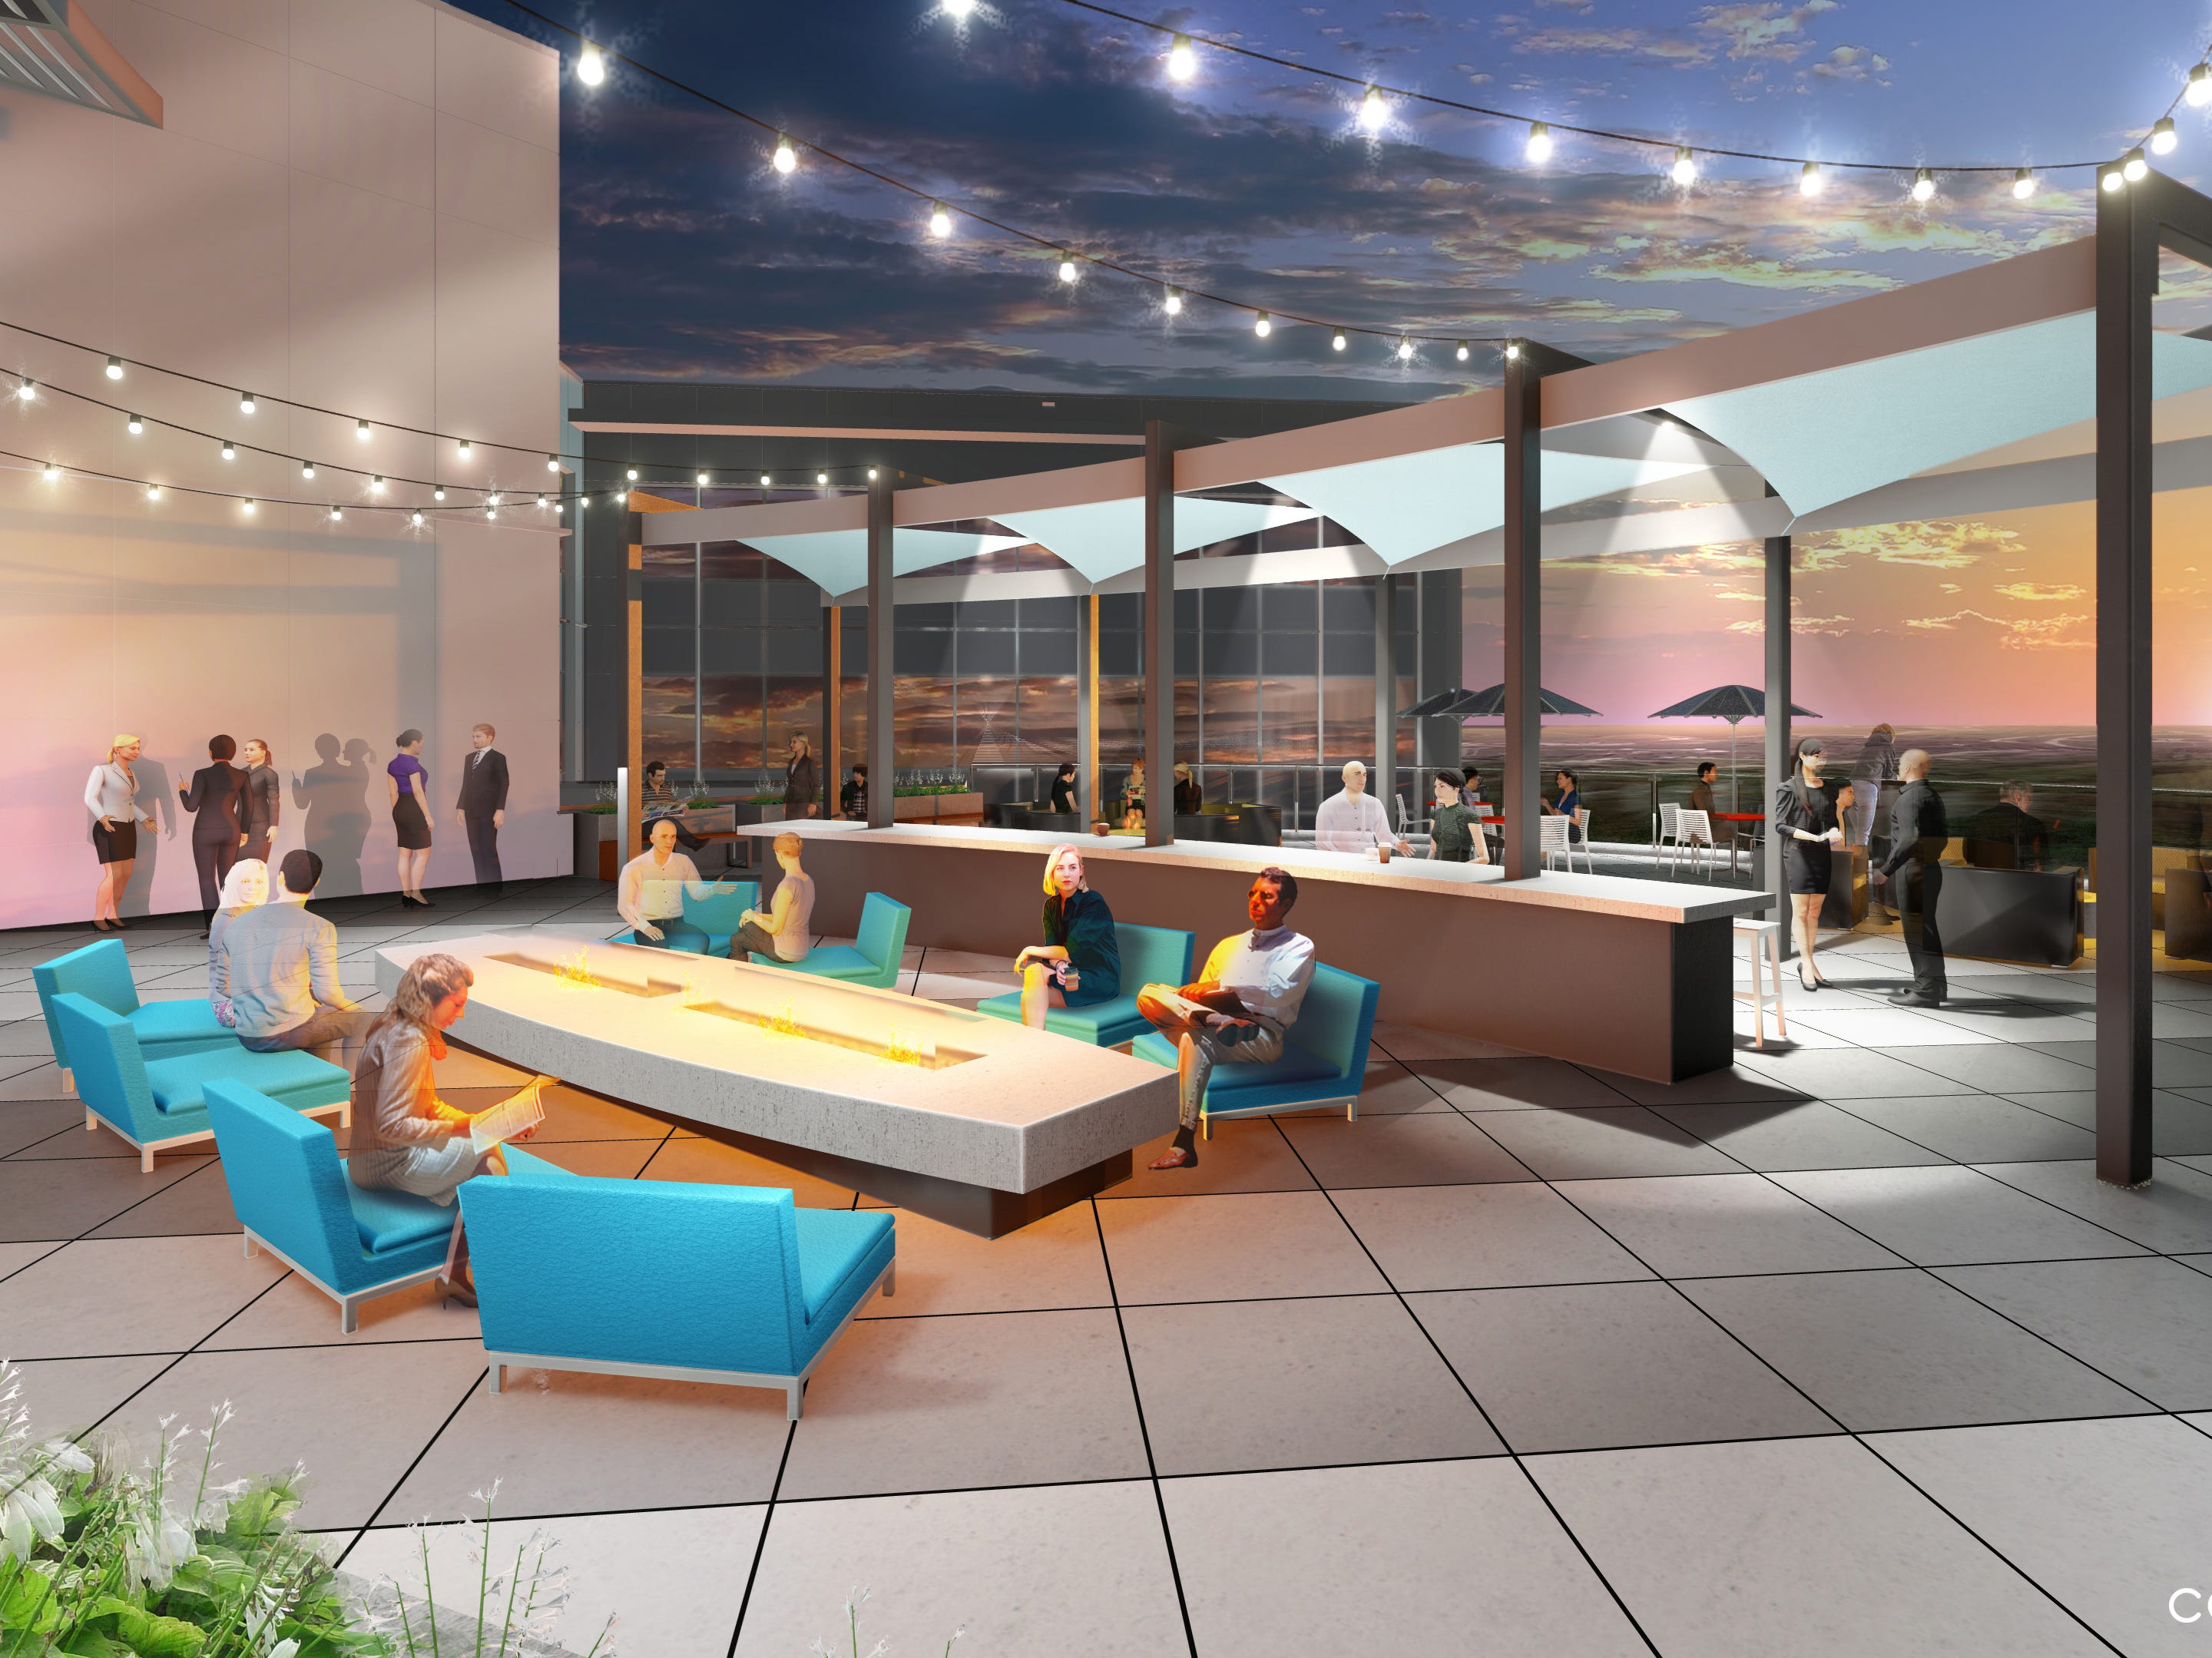 A rendering of the rooftop patio at The Westfield Campus. The outdoor amenities will open in the spring.